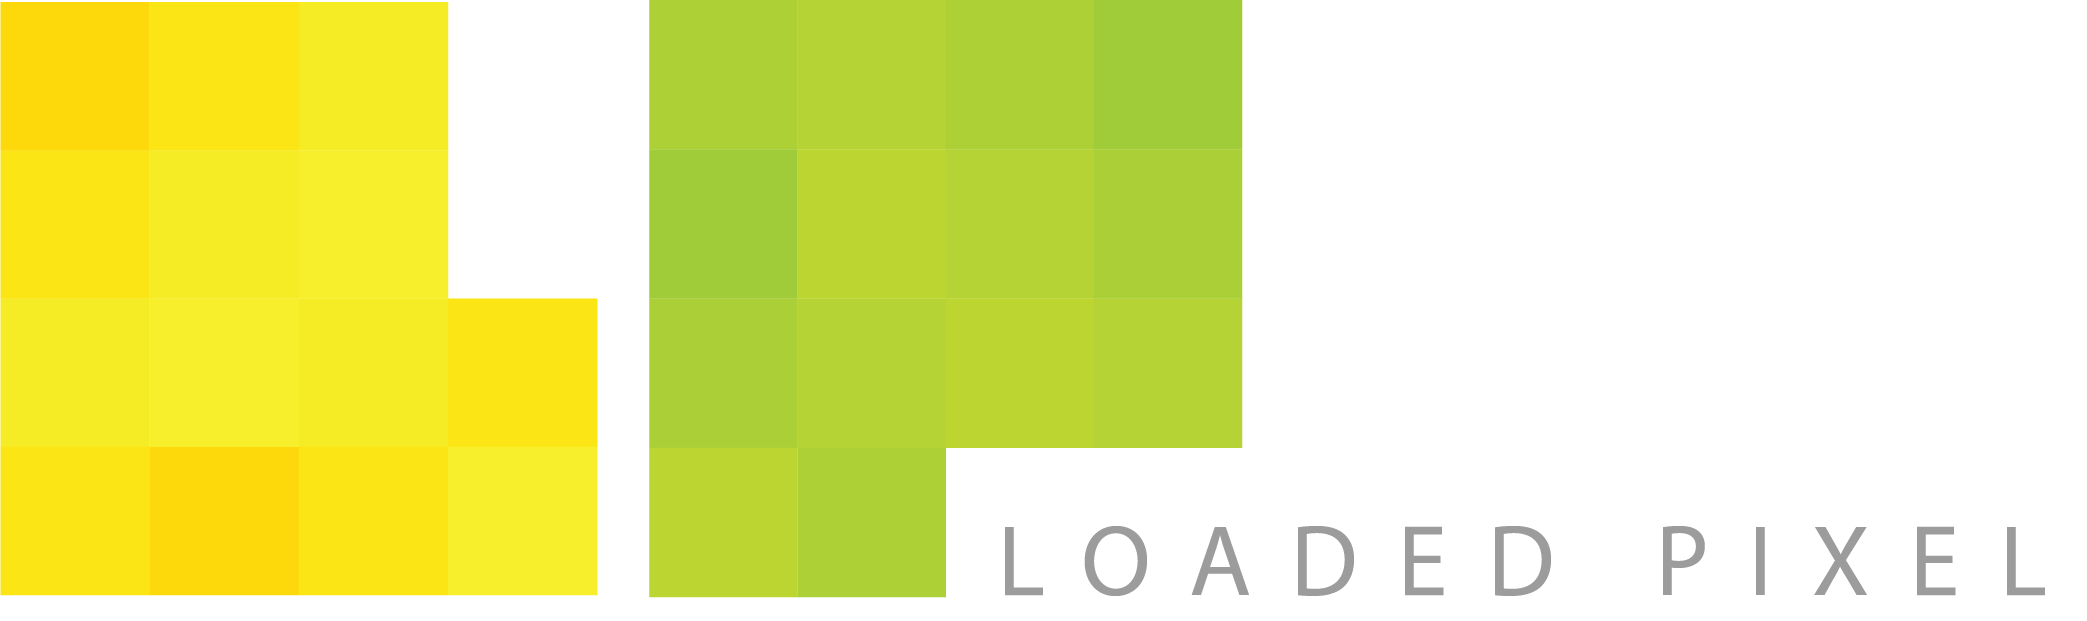 Loaded Pixel Logo